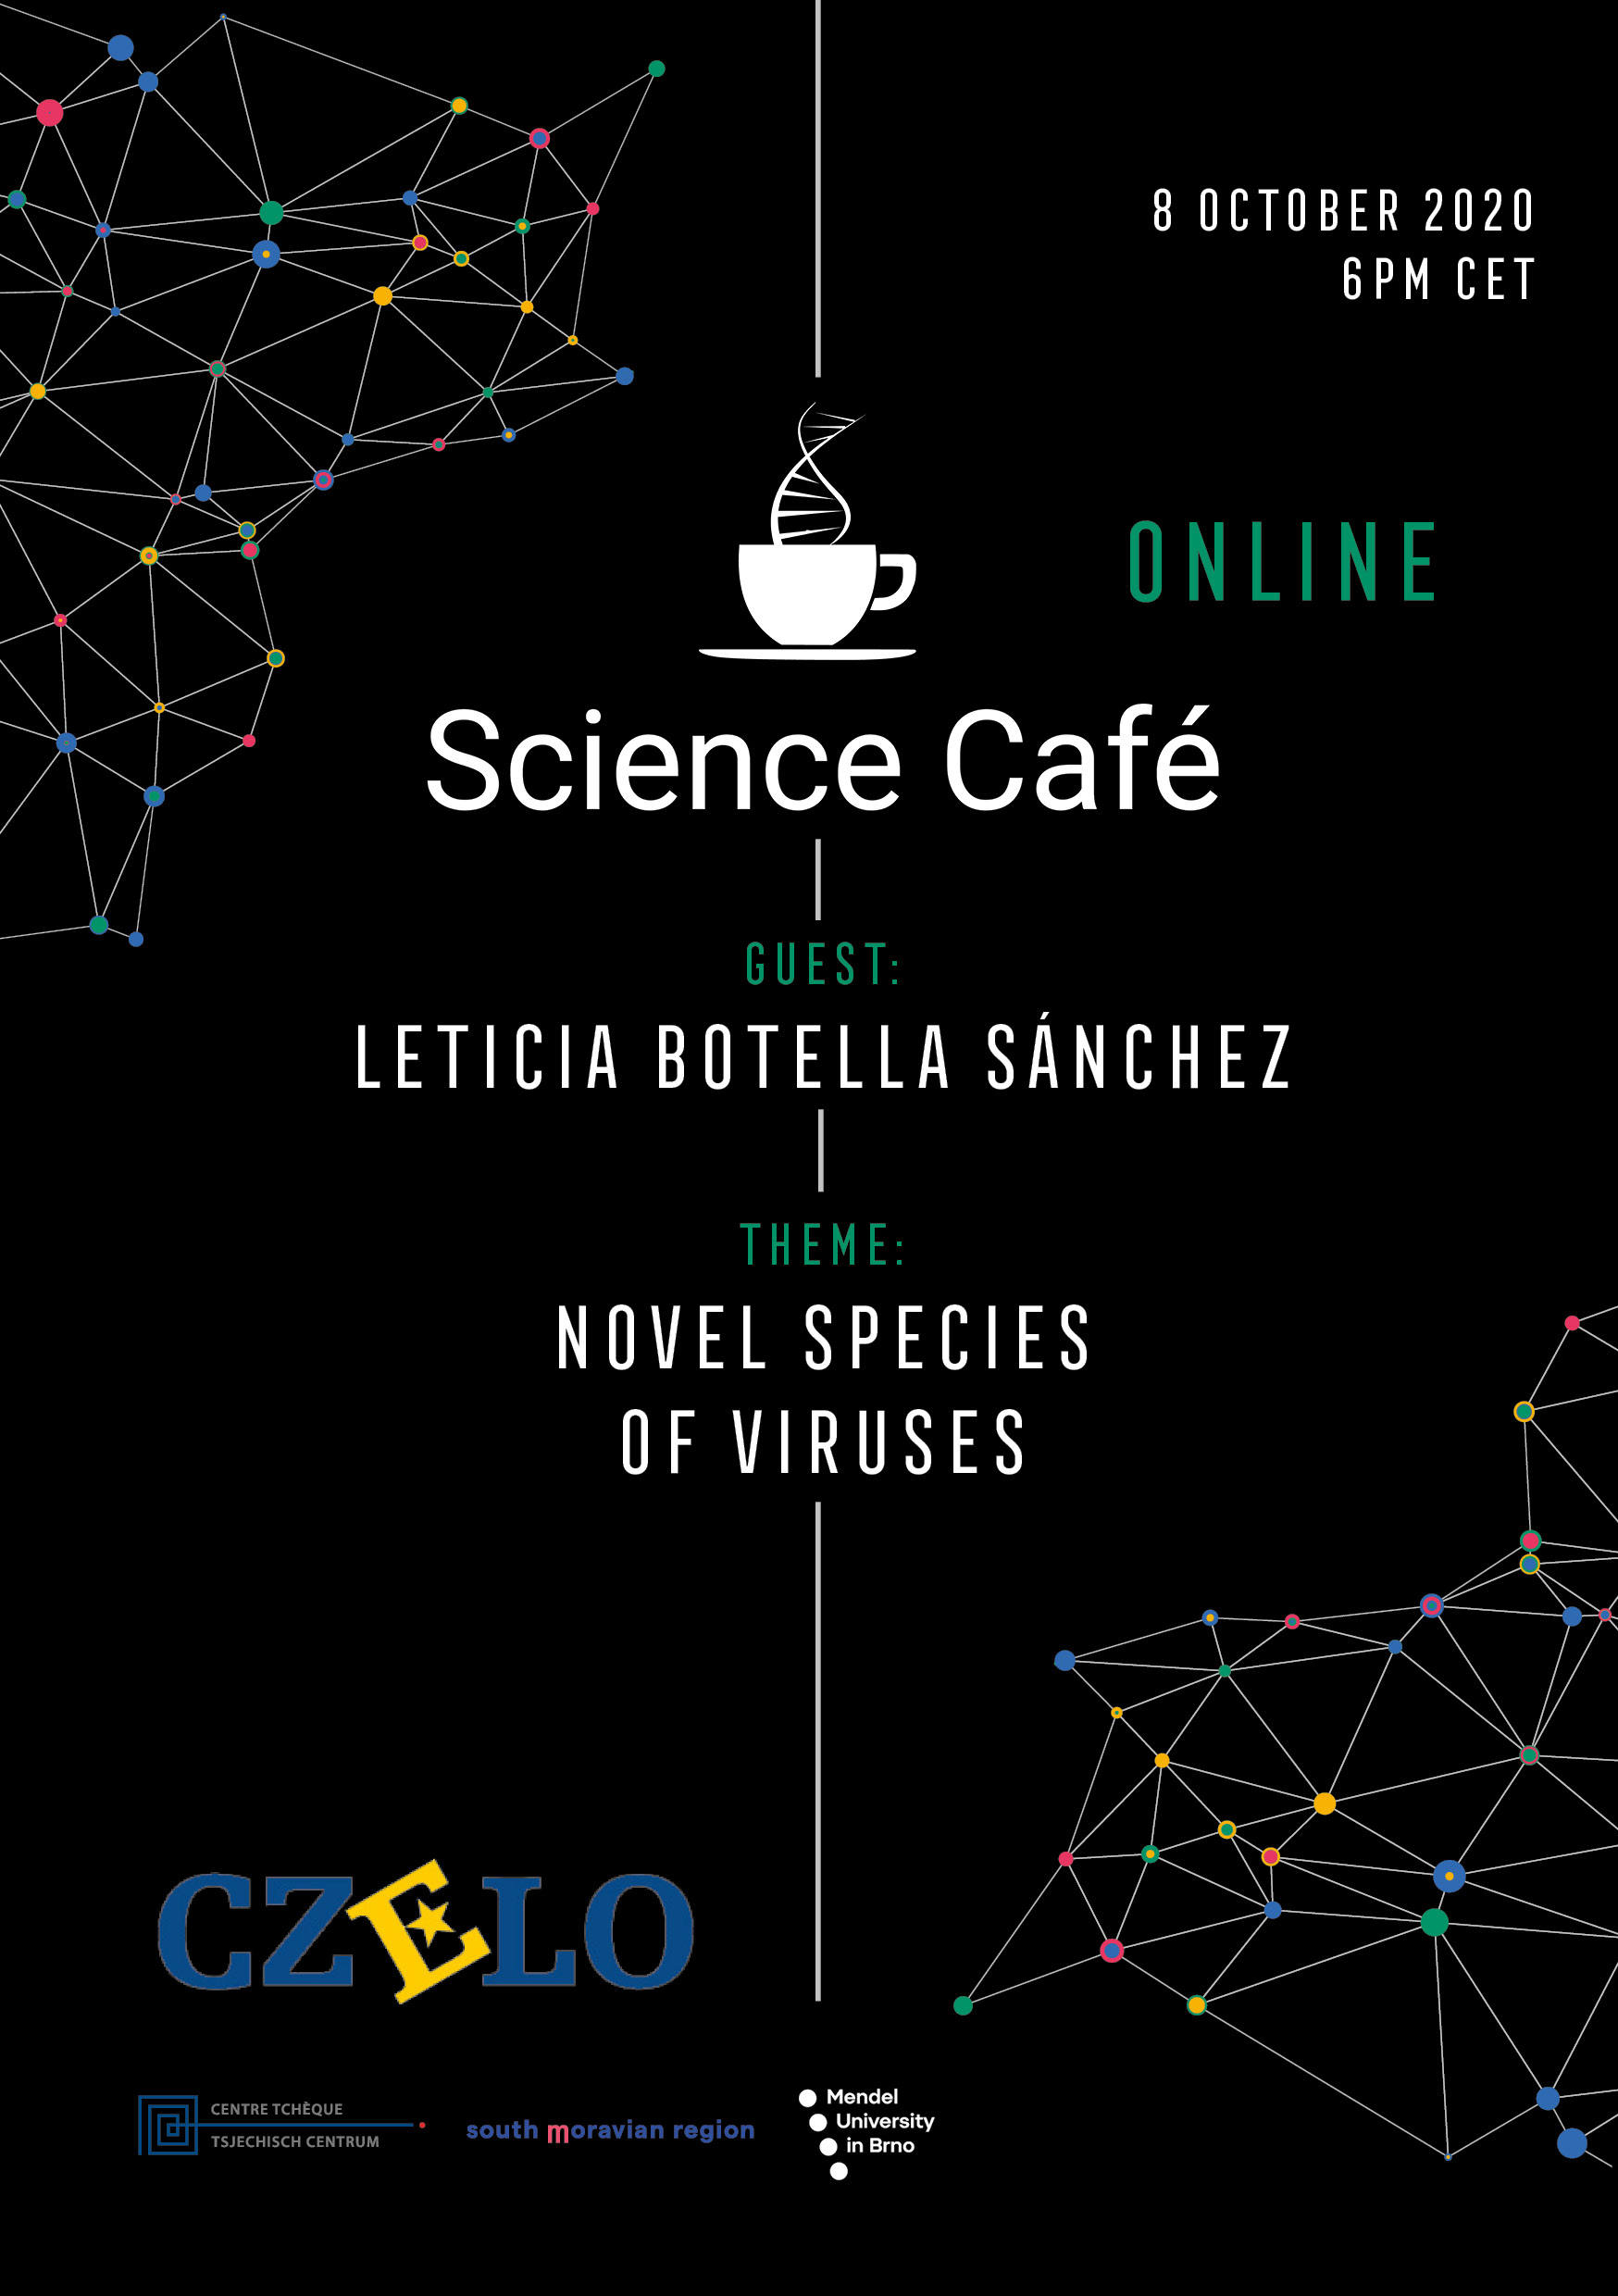 Science Café with Leticia Botella Sánchez